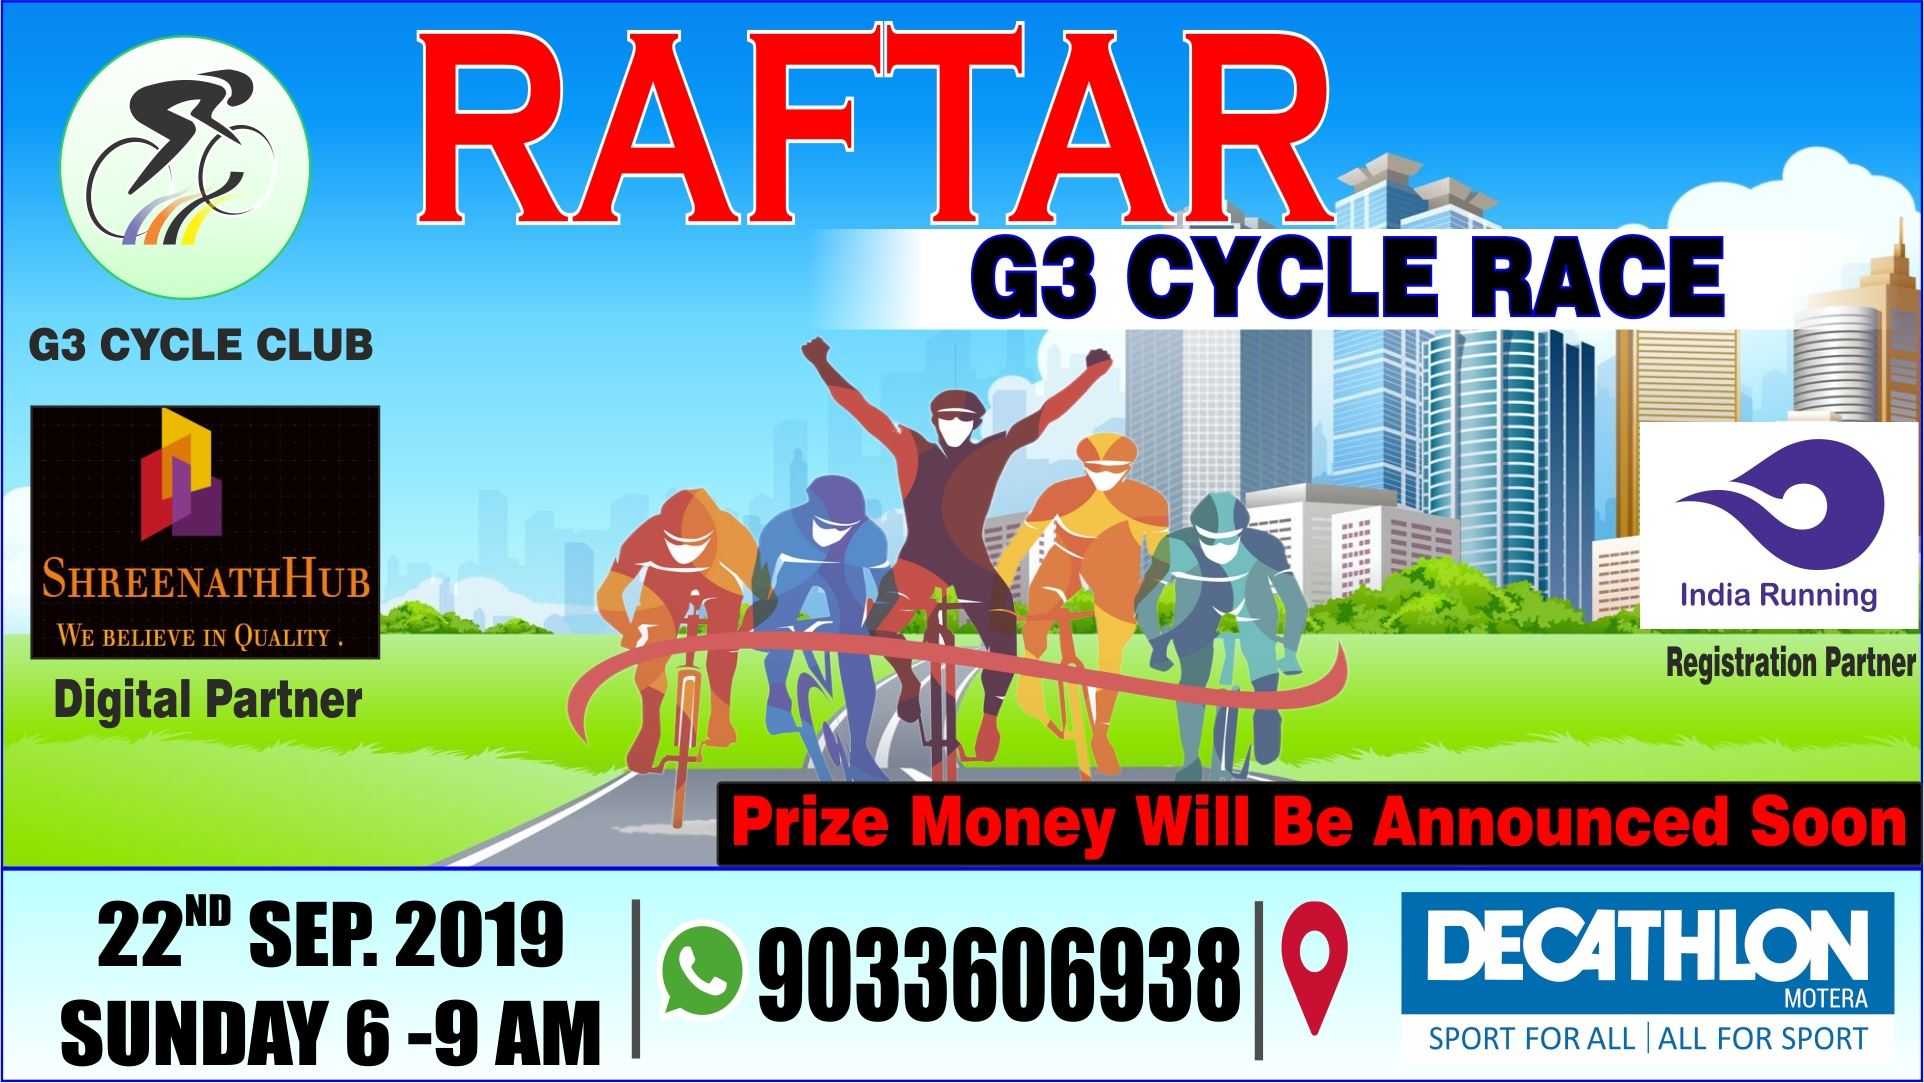 https://creativeyatra.com/wp-content/uploads/2019/09/Raftar-G3-Cycle-Race.jpg